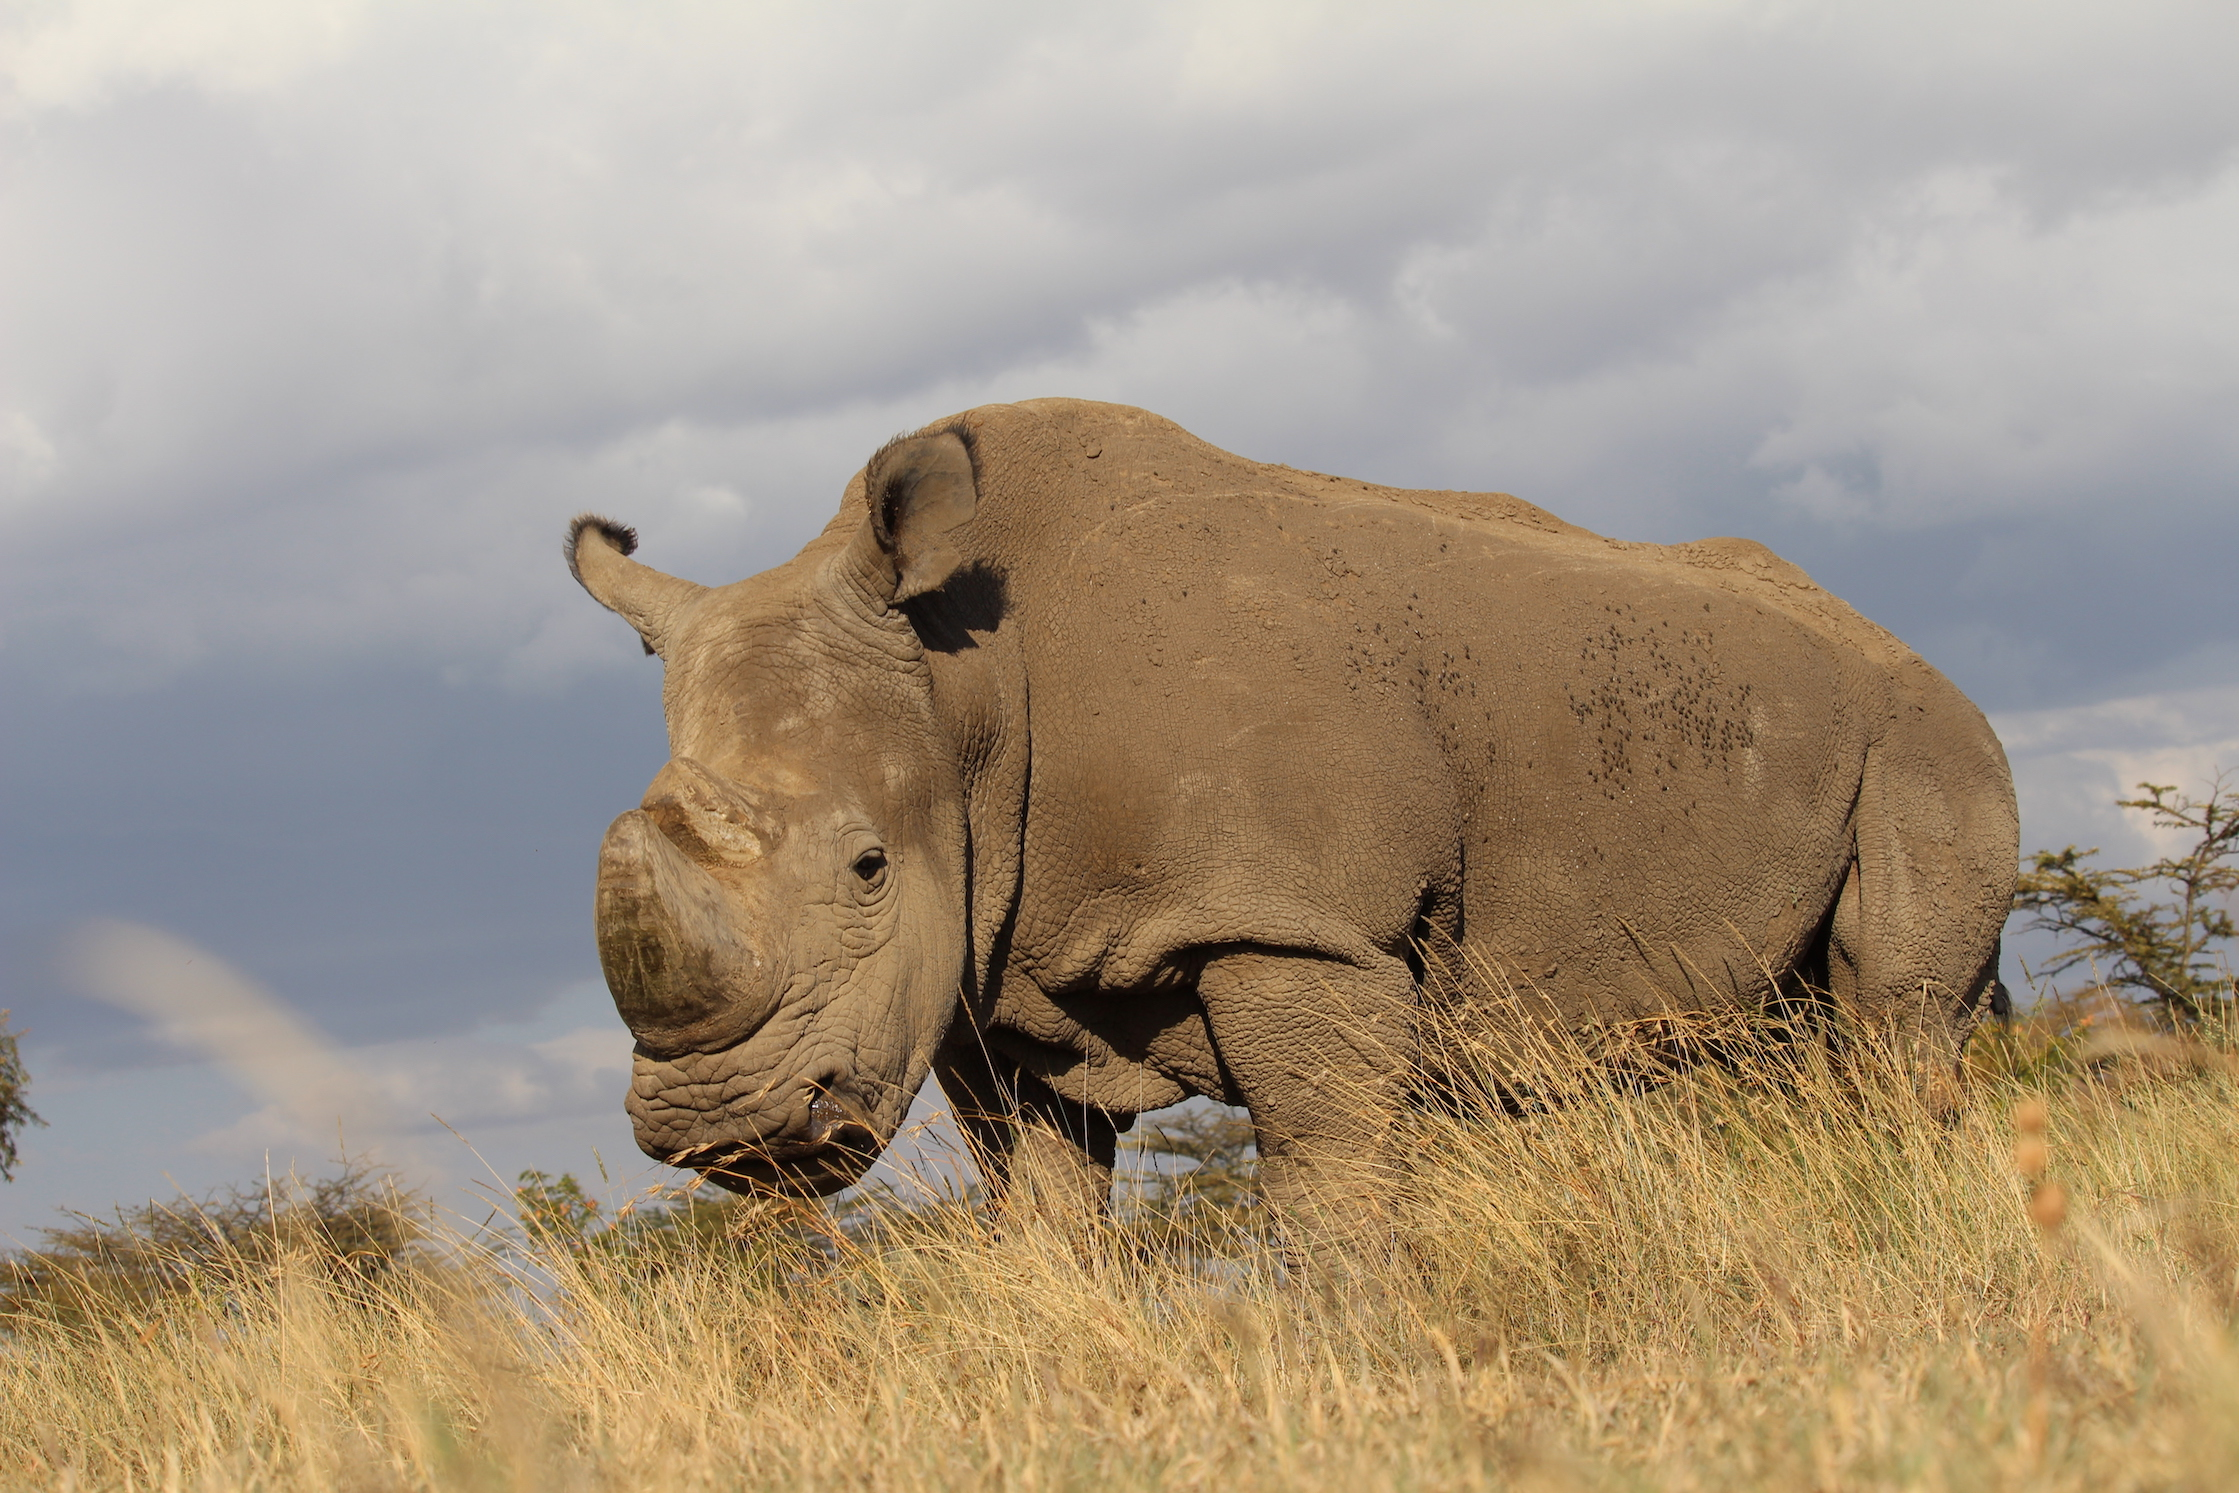 A new campaign by a Kenyan wildlife conservancy and the dating app Tinder aims to save endangered white rhinos.